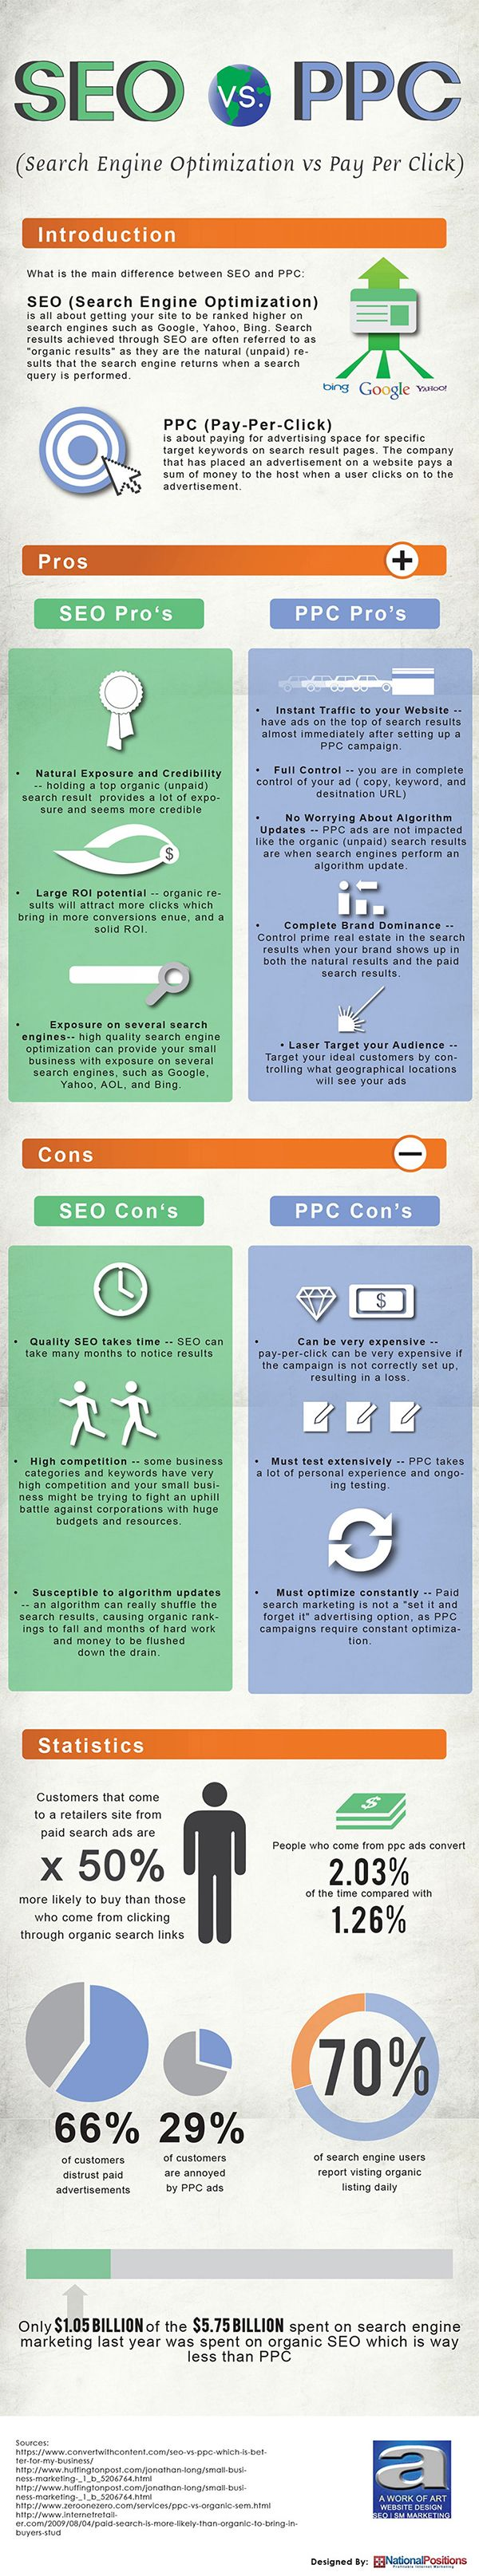 Seo vs PPC: How To Market Your Website [Infographic]